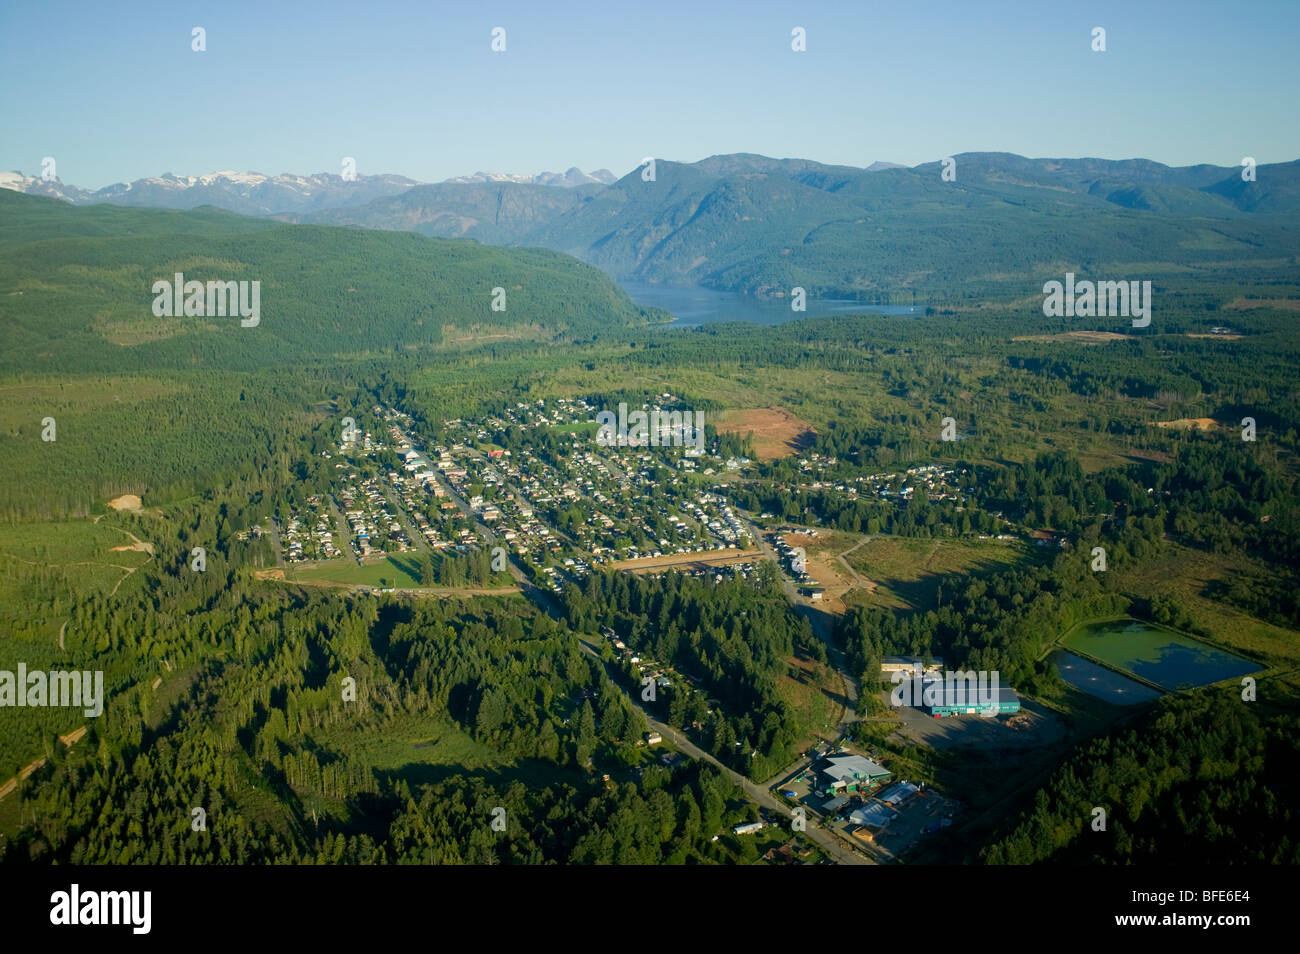 What Is The Population Of Vancouver Island British Columbia